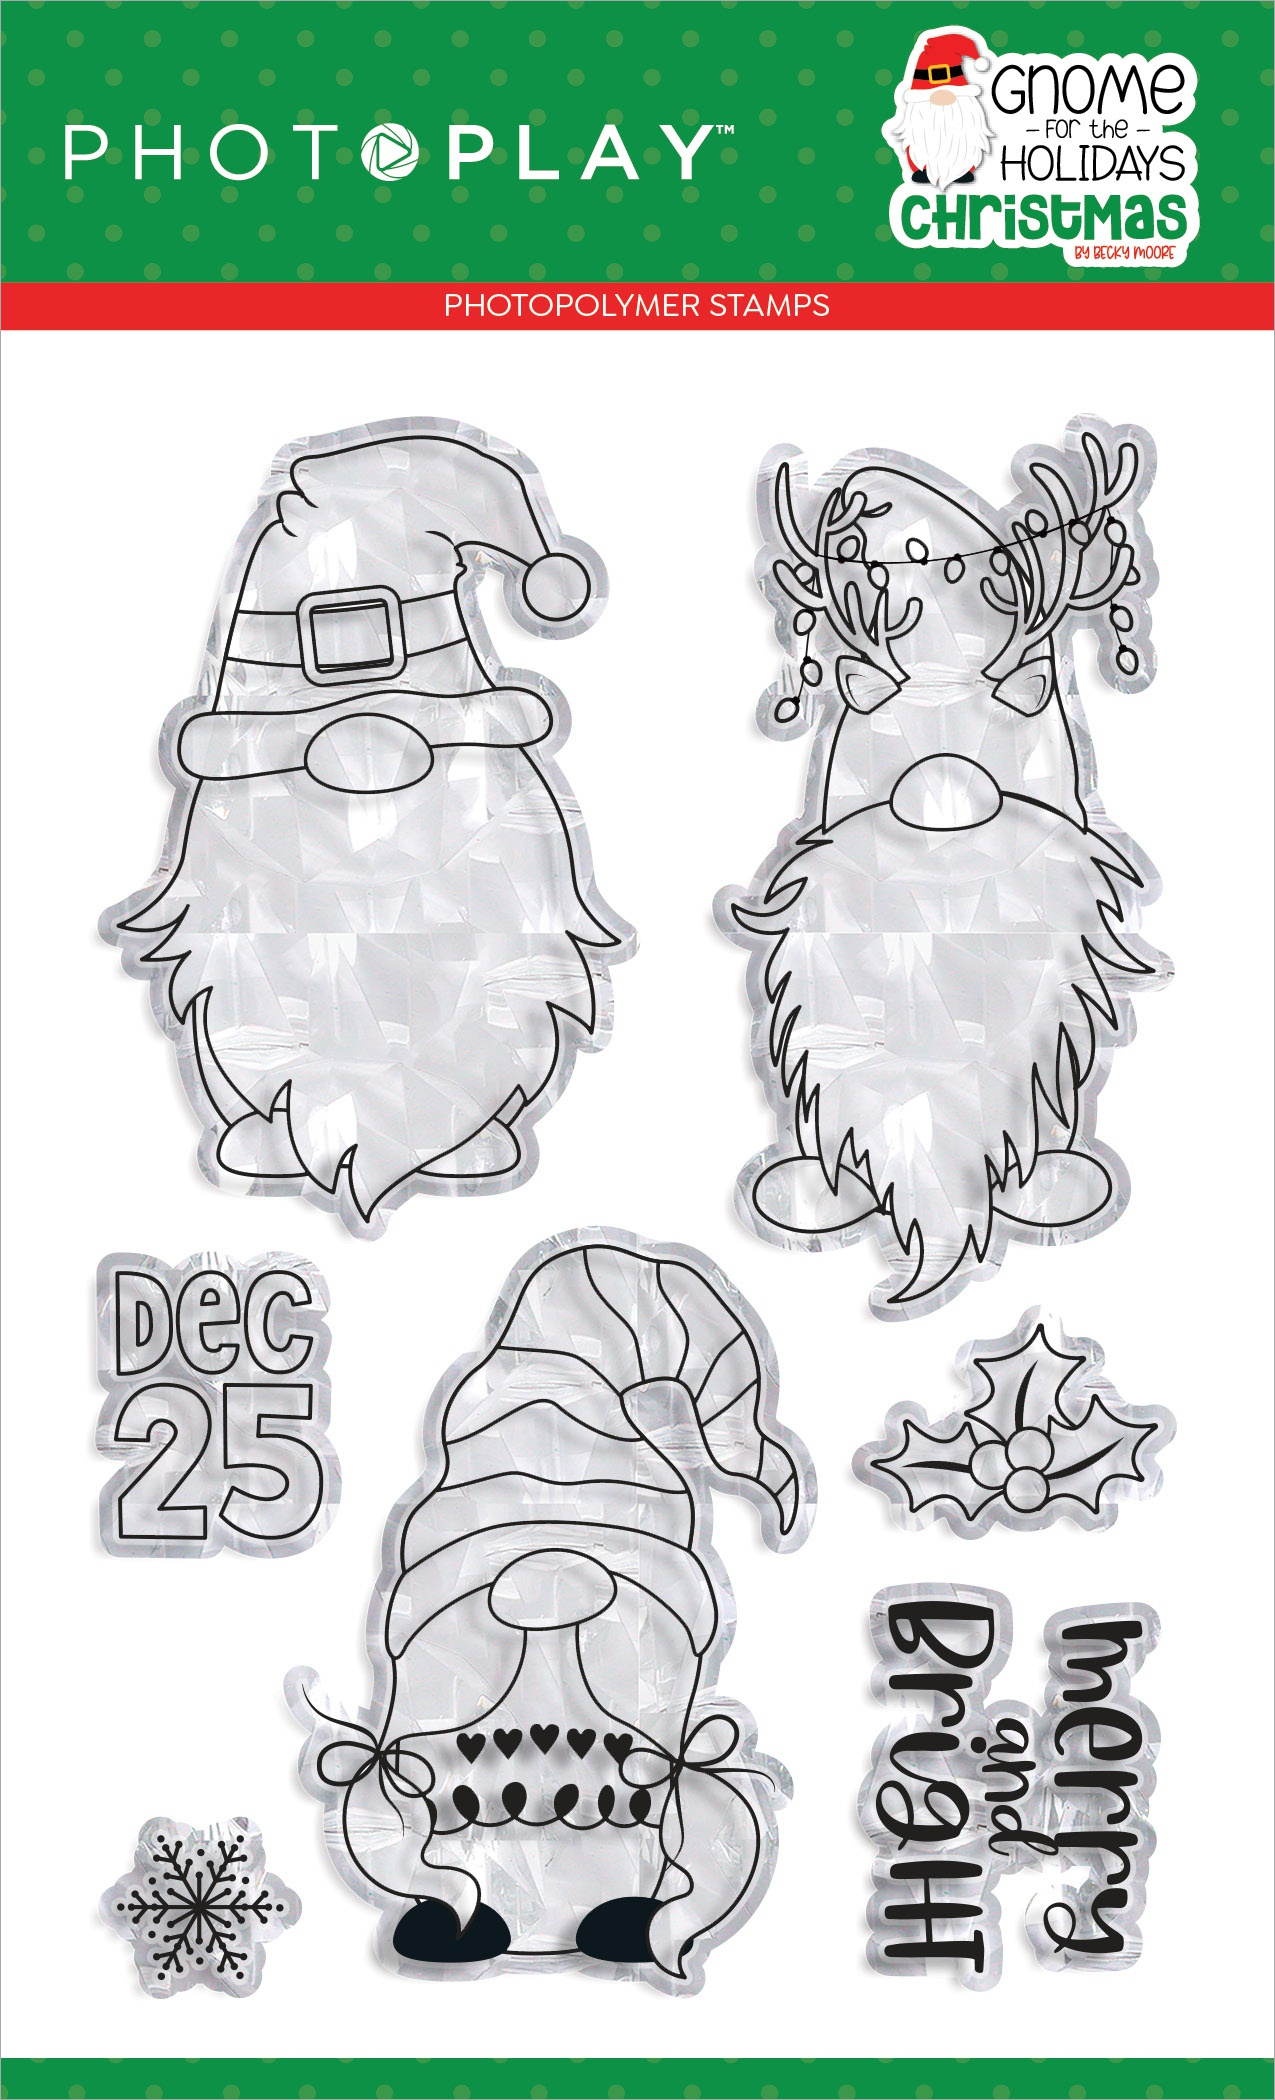 PhotoPlay Photopolymer Stamp-Gnome For Christmas